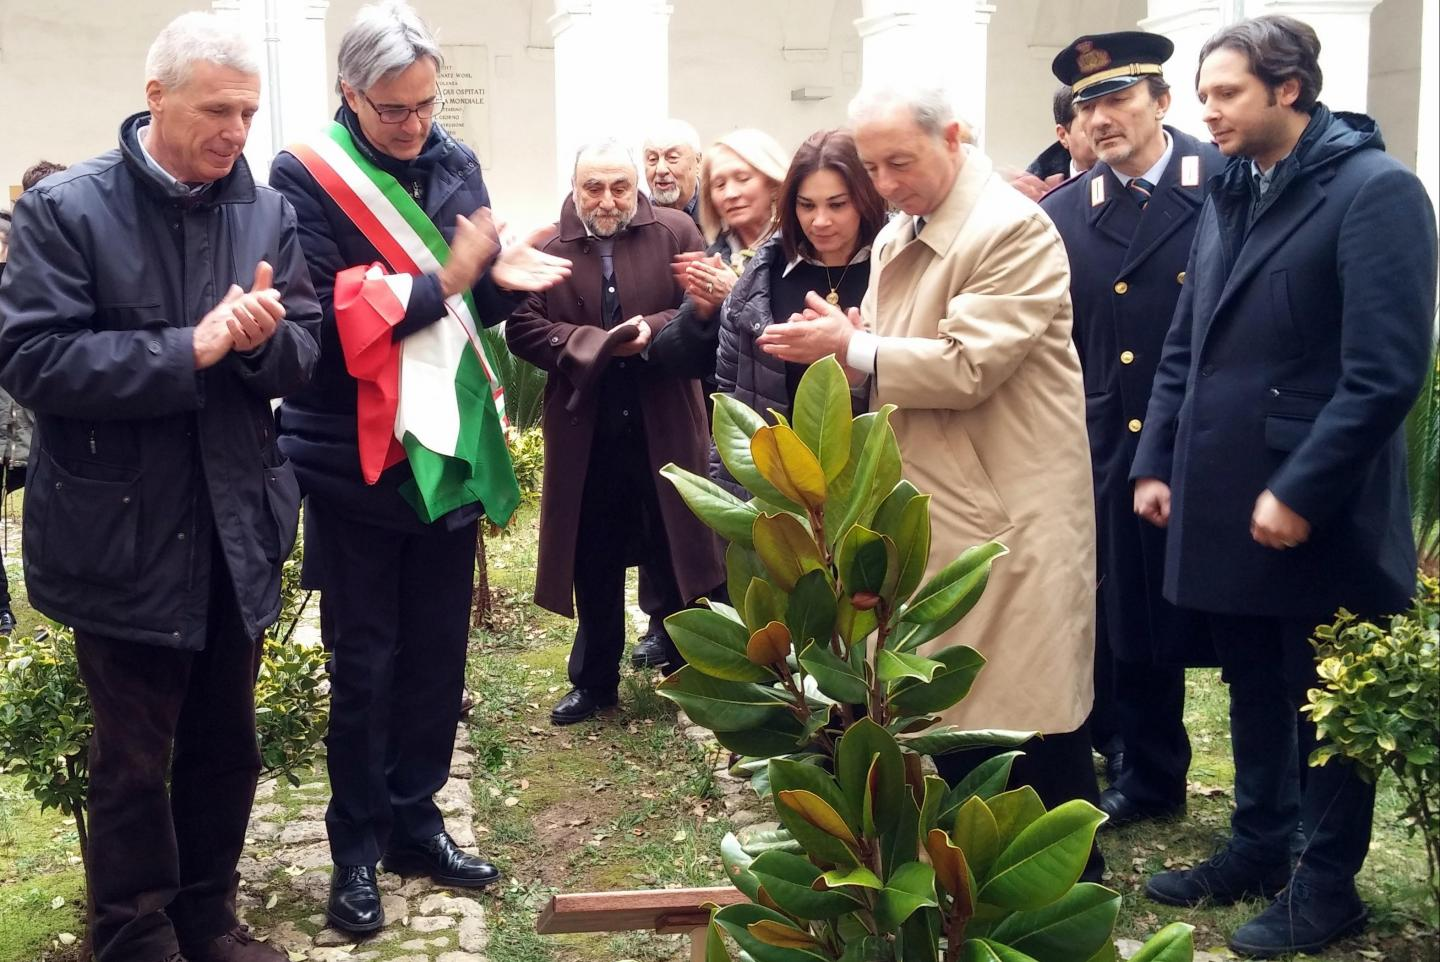 Inauguration of the Garden of the Righteous in Campagna. From the left: Franco Perlasca, the Mayor of Campagna Roberto Monaco, Professor Rossella De Luca and the Commissioner Pasquale Errico.